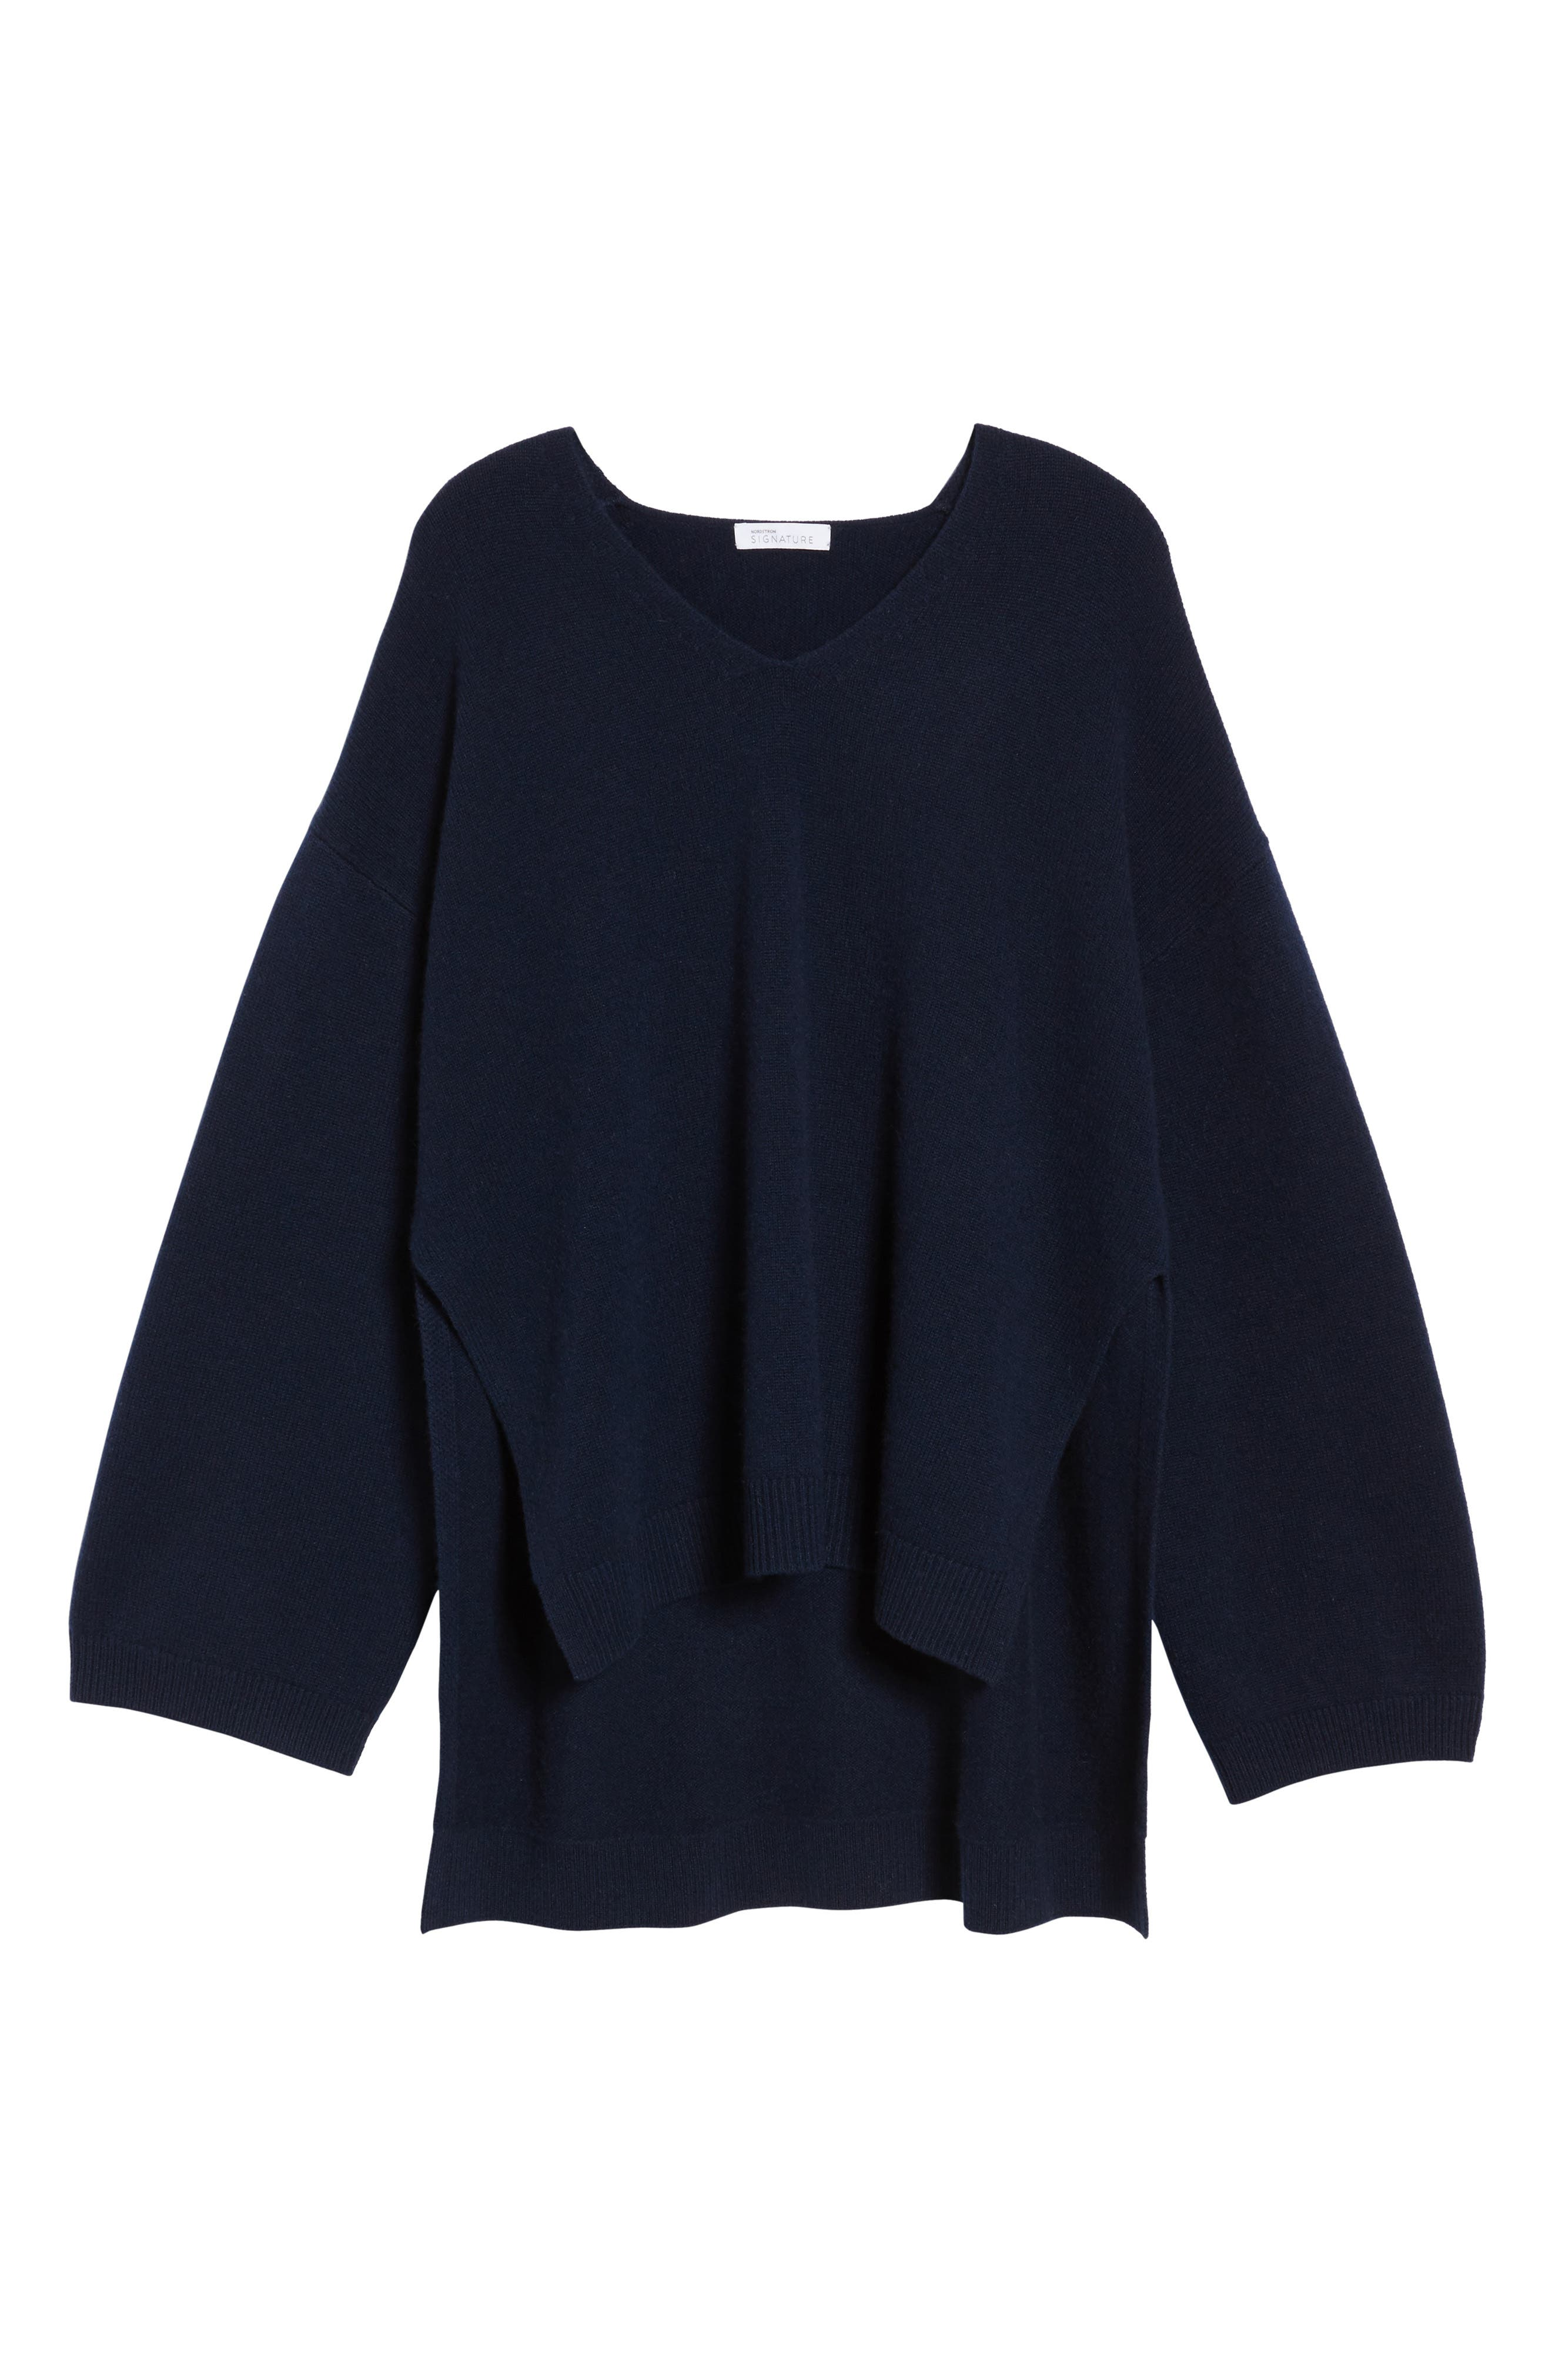 Cashmere High/Low Tunic Sweater,                             Alternate thumbnail 6, color,                             410